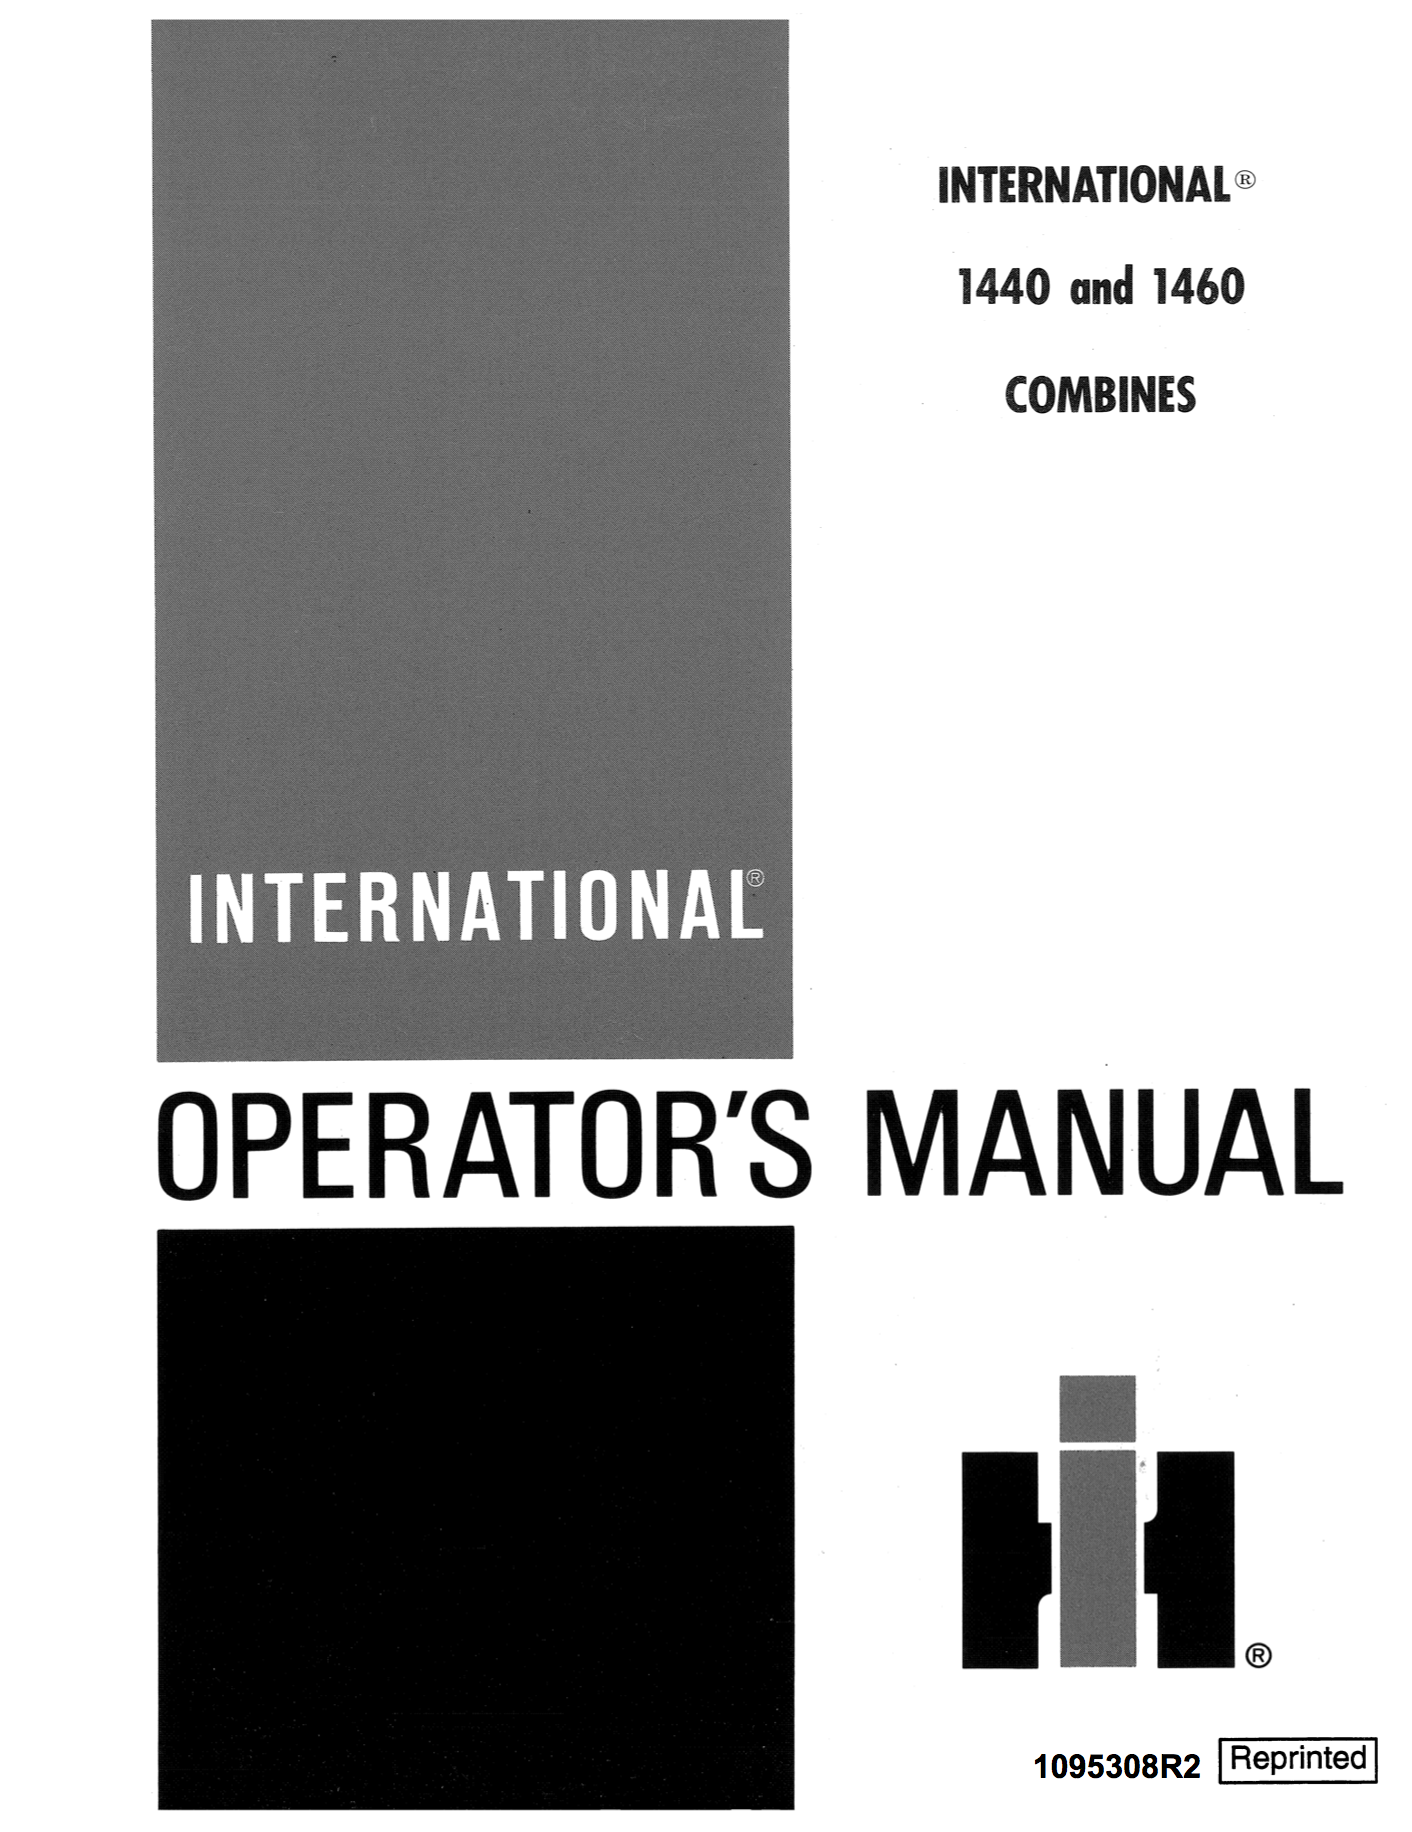 Additional pictures of the International 1440, 1460, and 1480 Combines  Manual.